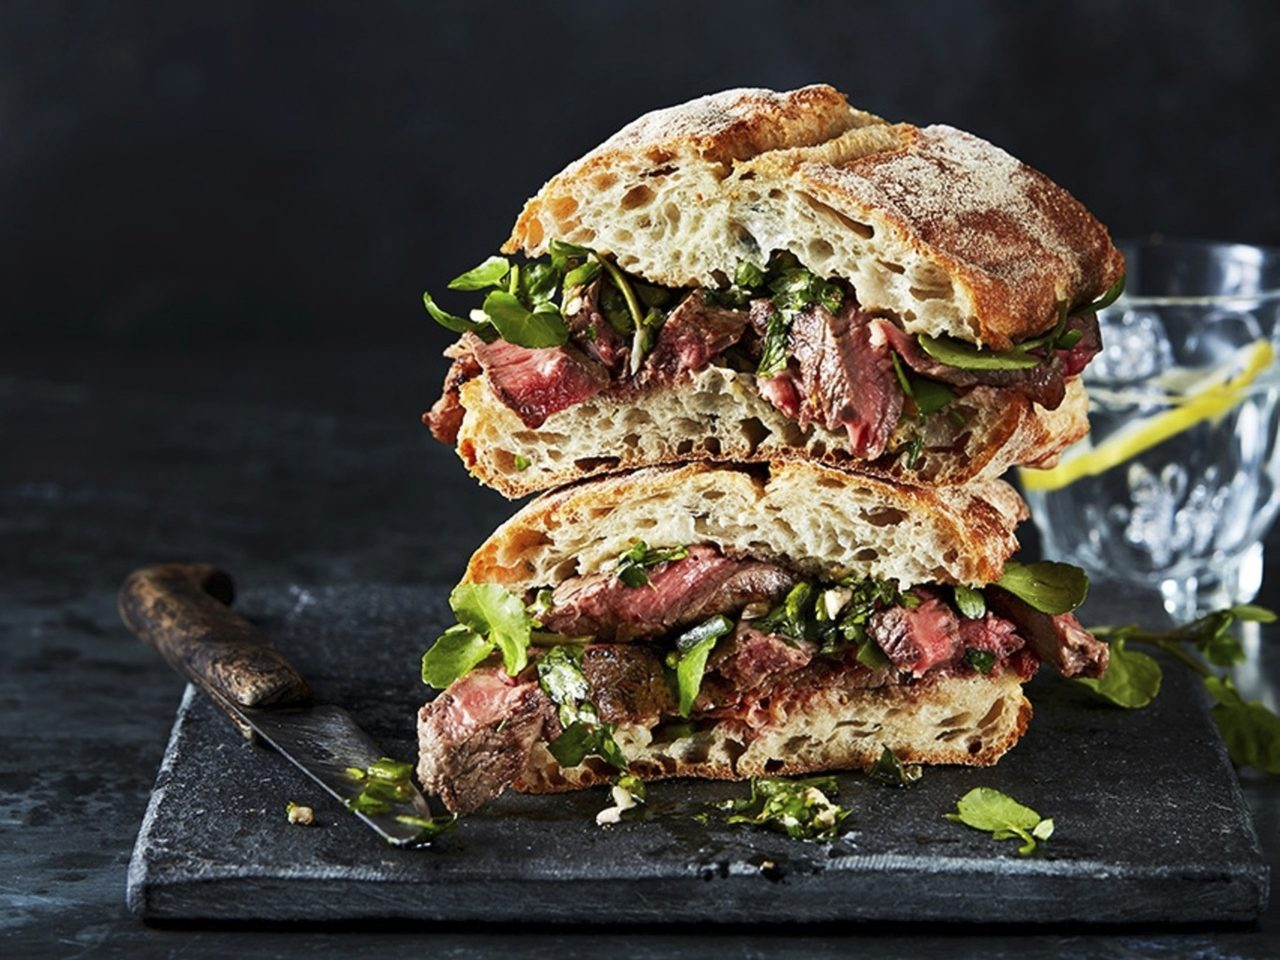 STEAK SANDWICH WITH CHIMICHURRI